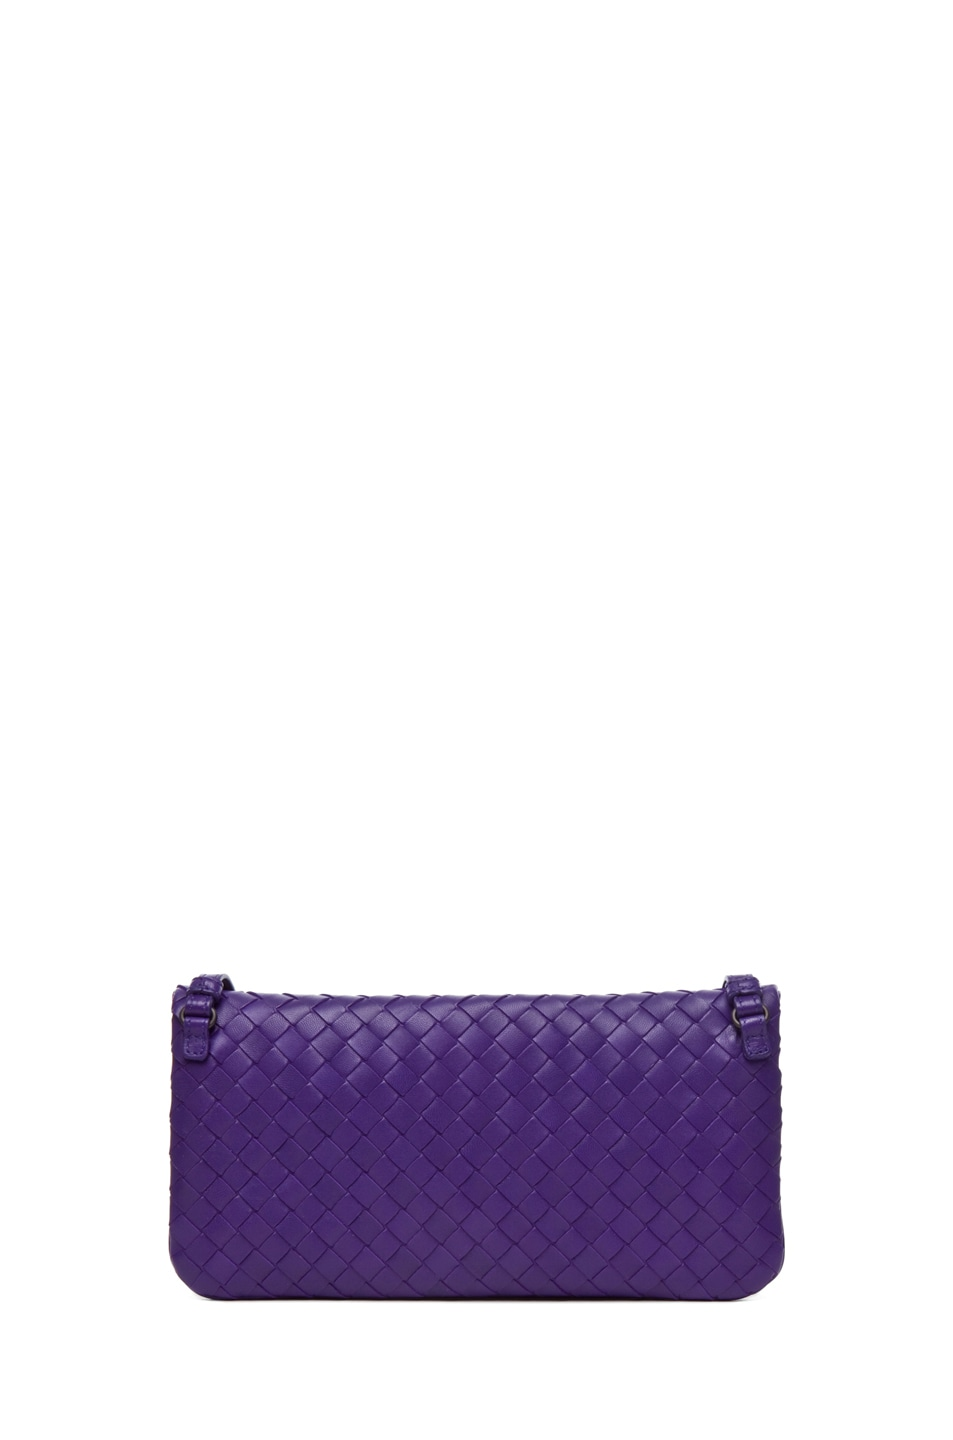 Image 2 of Bottega Veneta Crossbody Bag in Violet